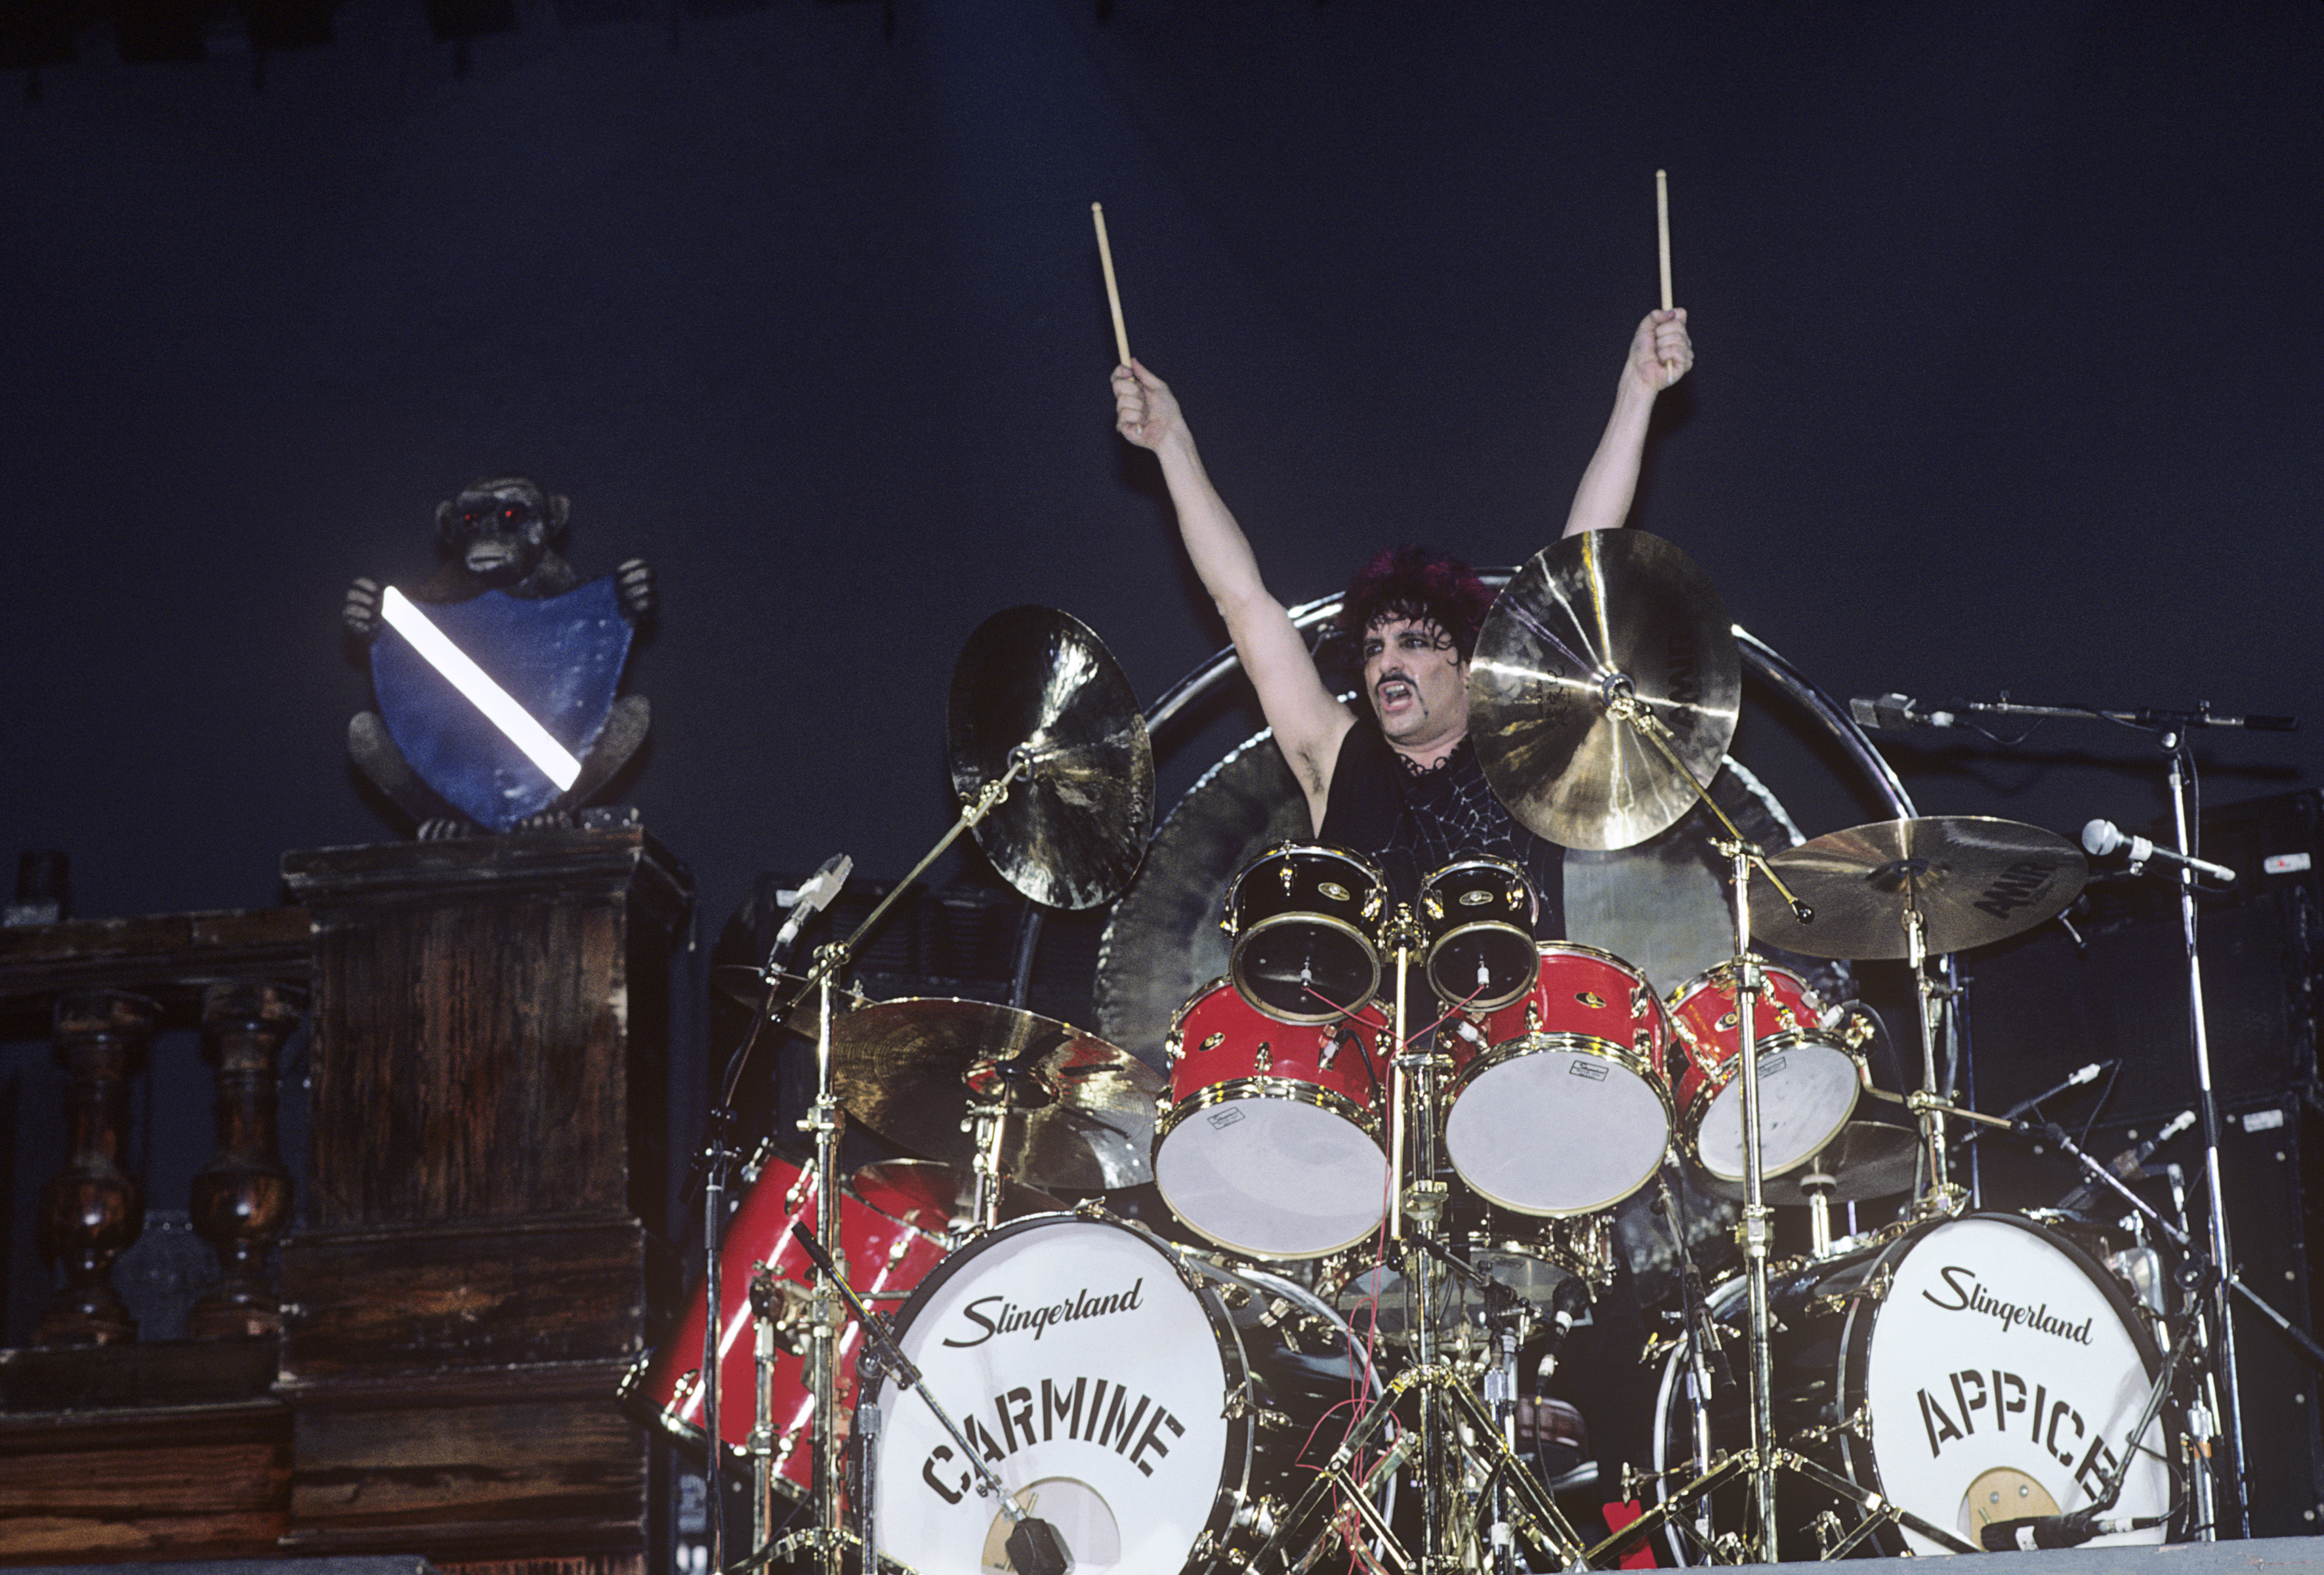 Carmine Appice performing with Ozzy Osbourne at Madison Square Garden in New York City on January 30, 1984. (Photo by Ebet Ro